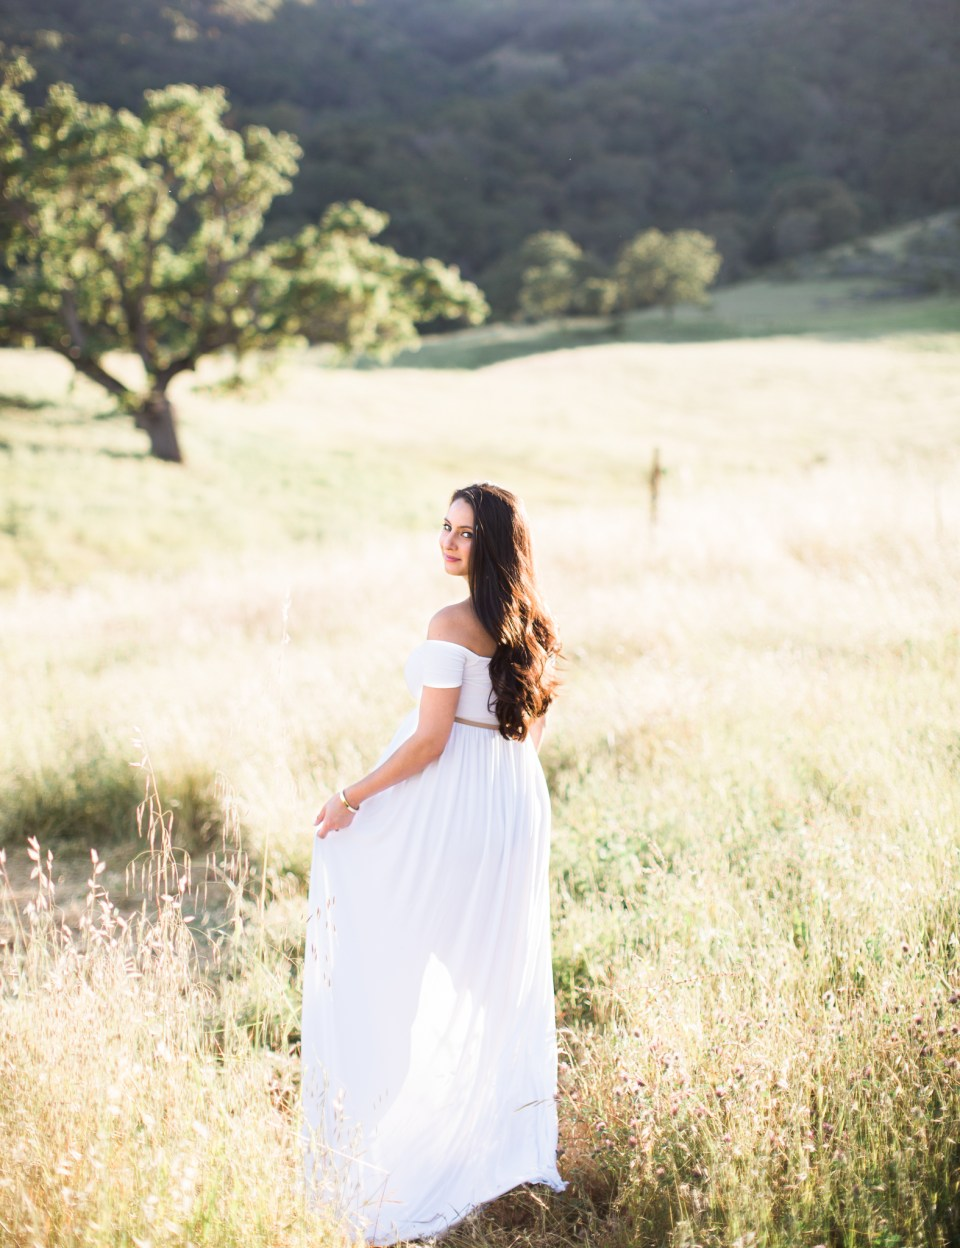 Ashley_Ronnie_Maternity_Pictures_Alviso_Adobe_Park-7